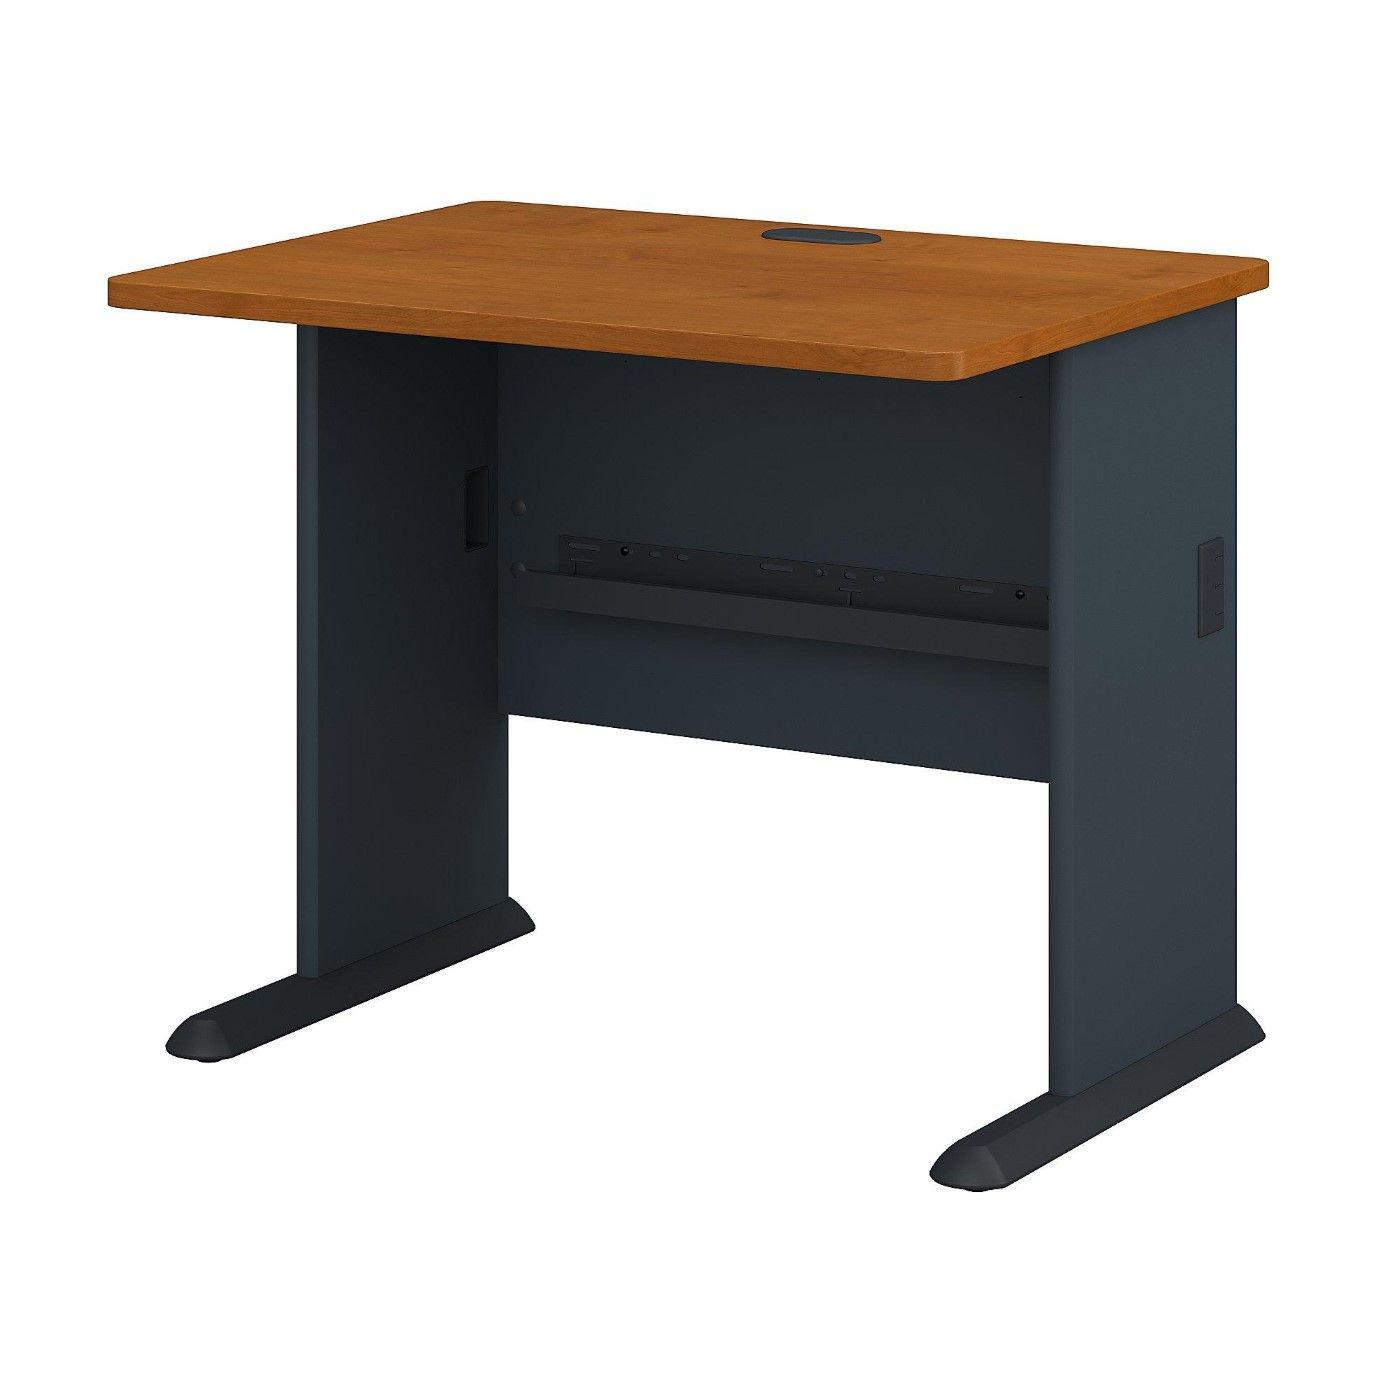 <font color=#c60><b>BUSH BUSINESS FURNITURE SERIES A 36W DESK. FREE SHIPPING</font></b></font></b>